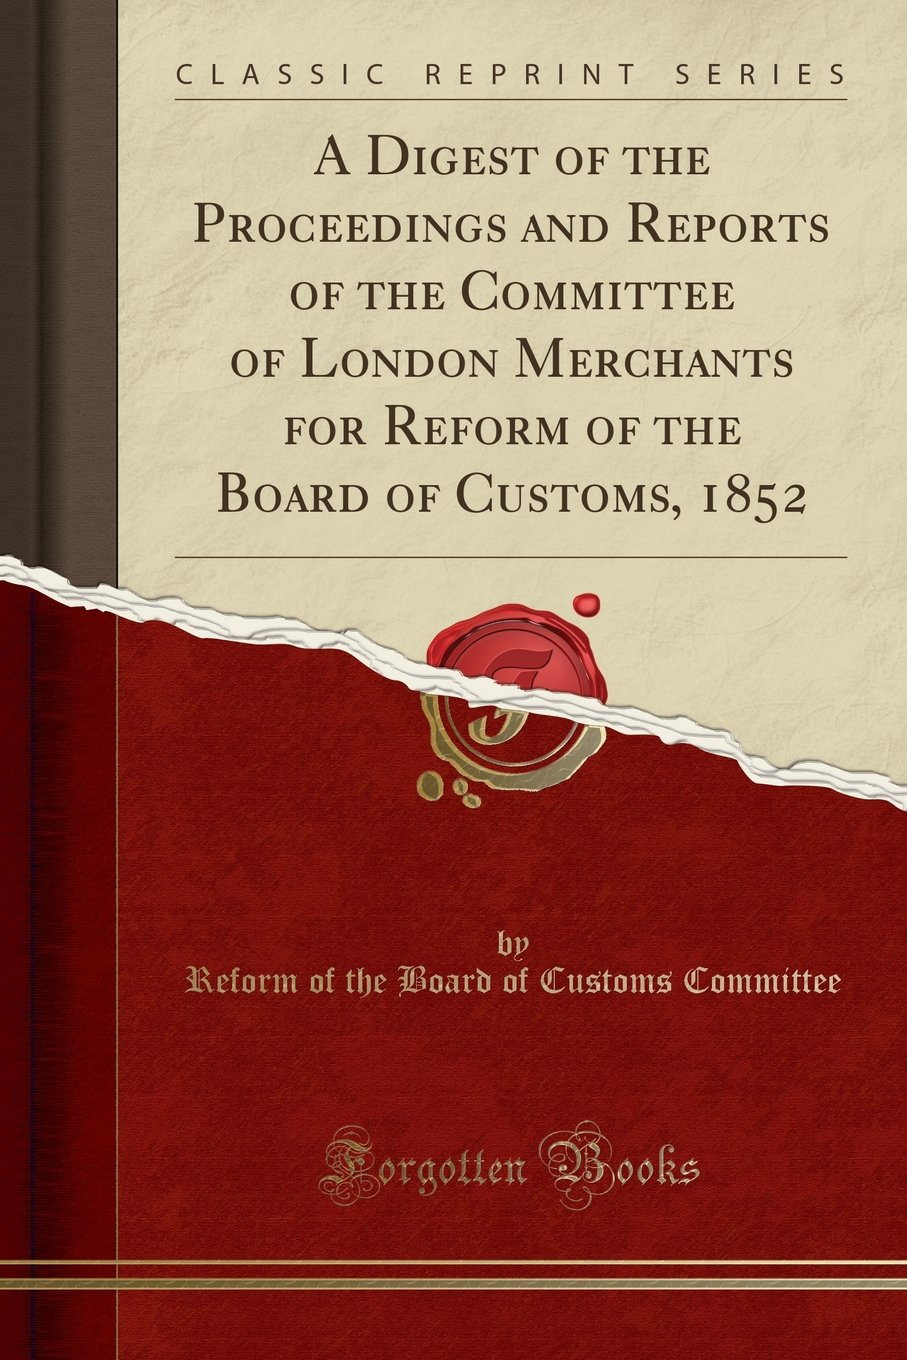 A Digest of the Proceedings and Reports of the Committee of London Merchants for Reform of the Board of Customs, 1852 (Classic Reprint) pdf epub